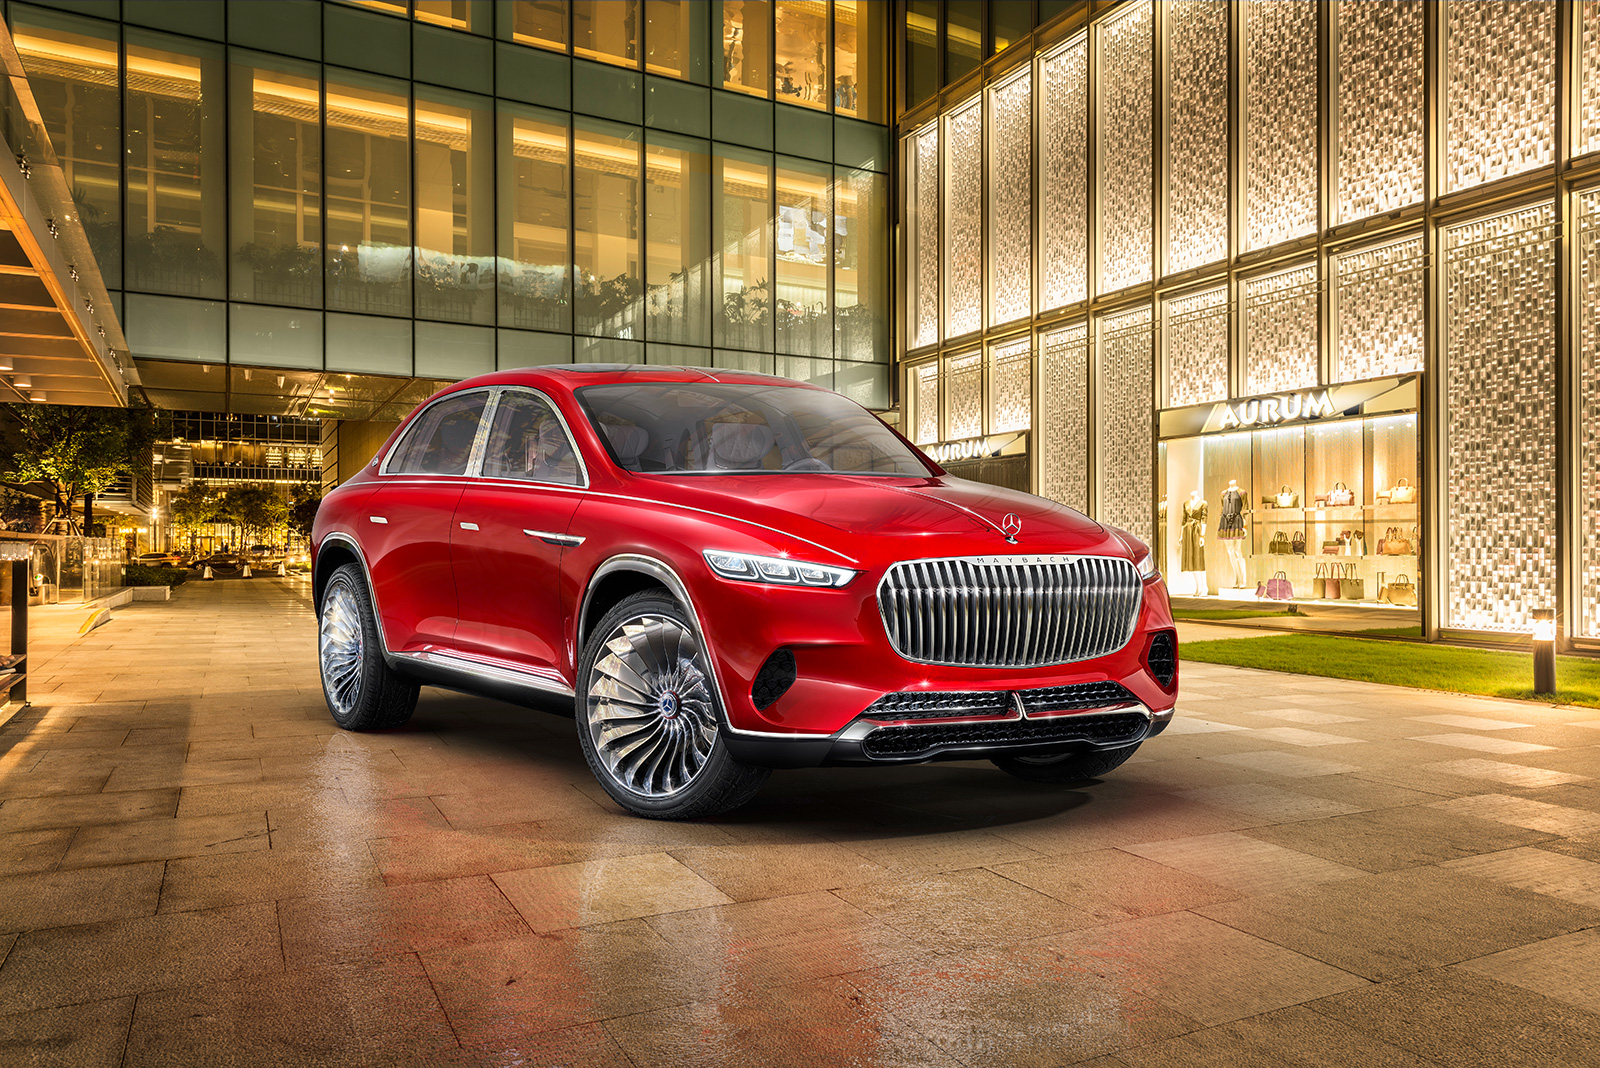 Mercedes Maybach S Suv Concept Is A Lifted S Class Sedan Autoguide Com News